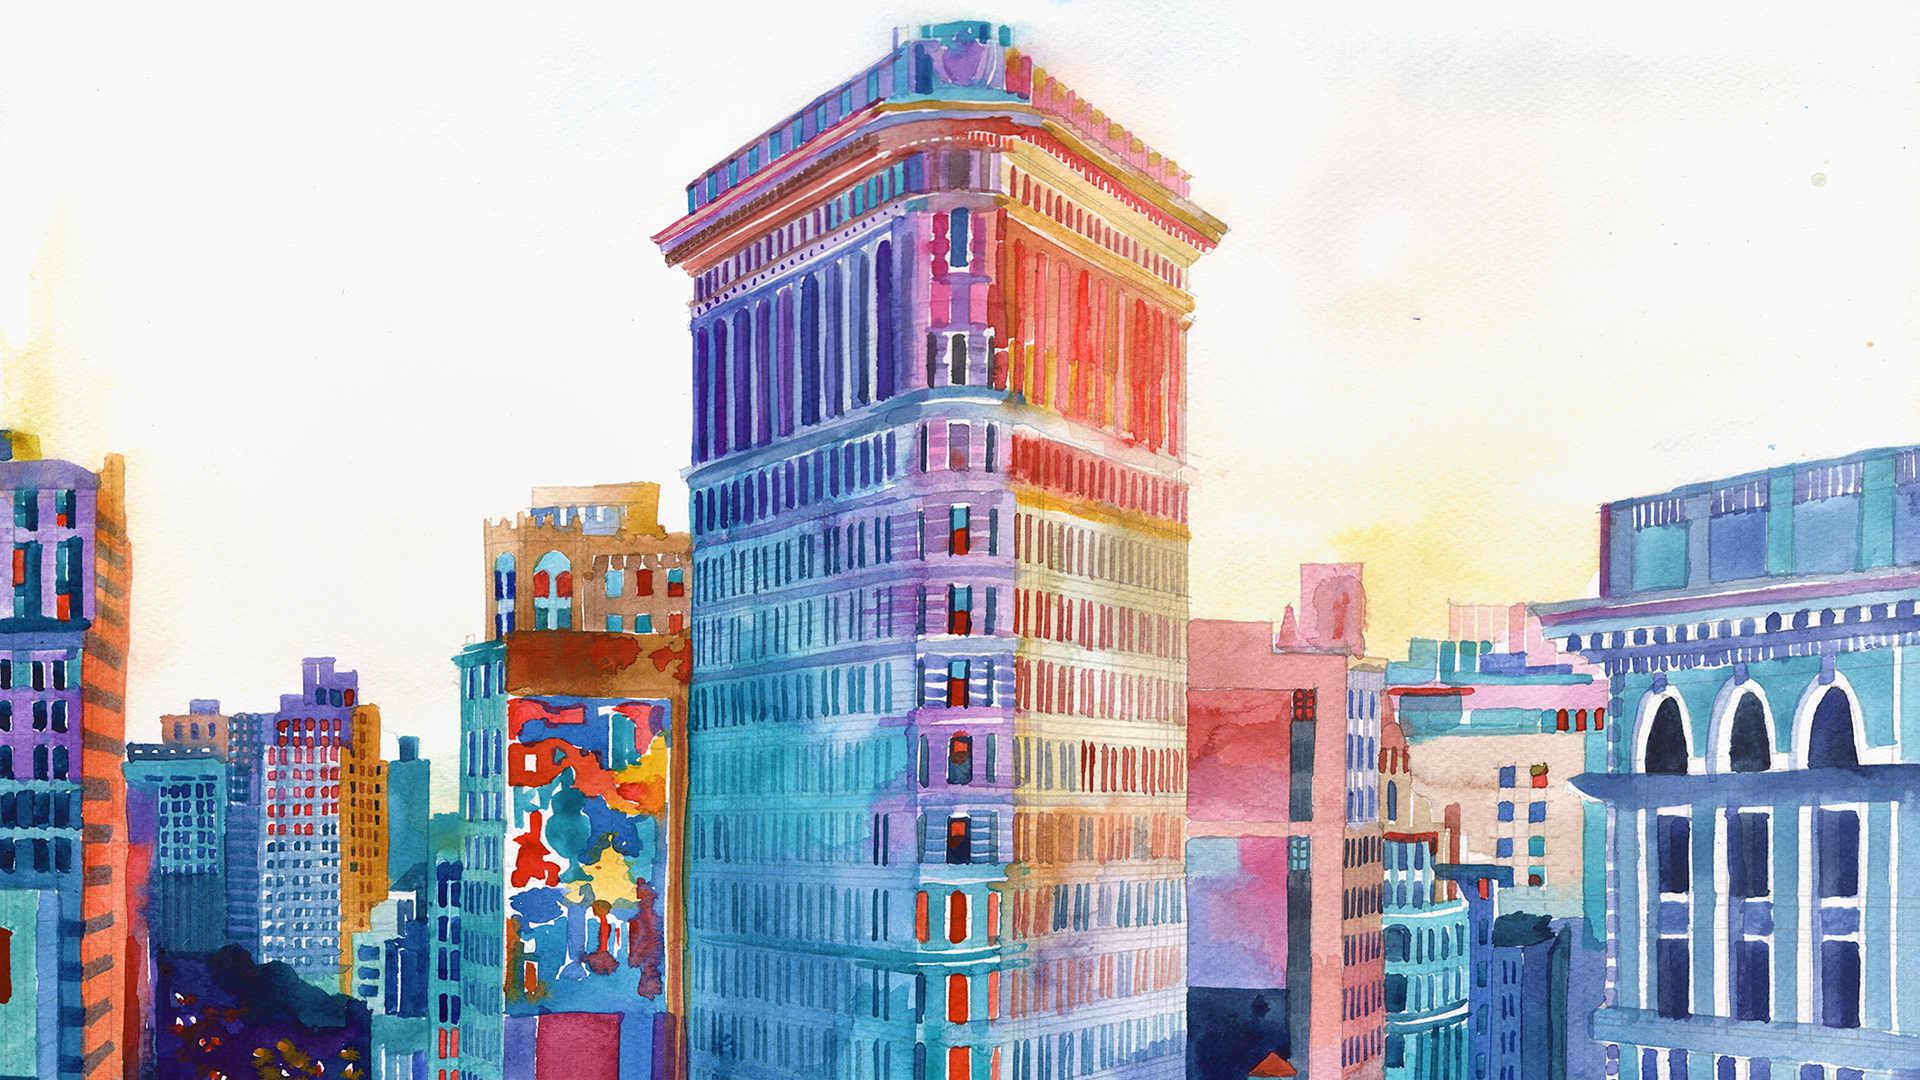 5041469 1920x1080 Building, New York, Watercolor wallpaper and.